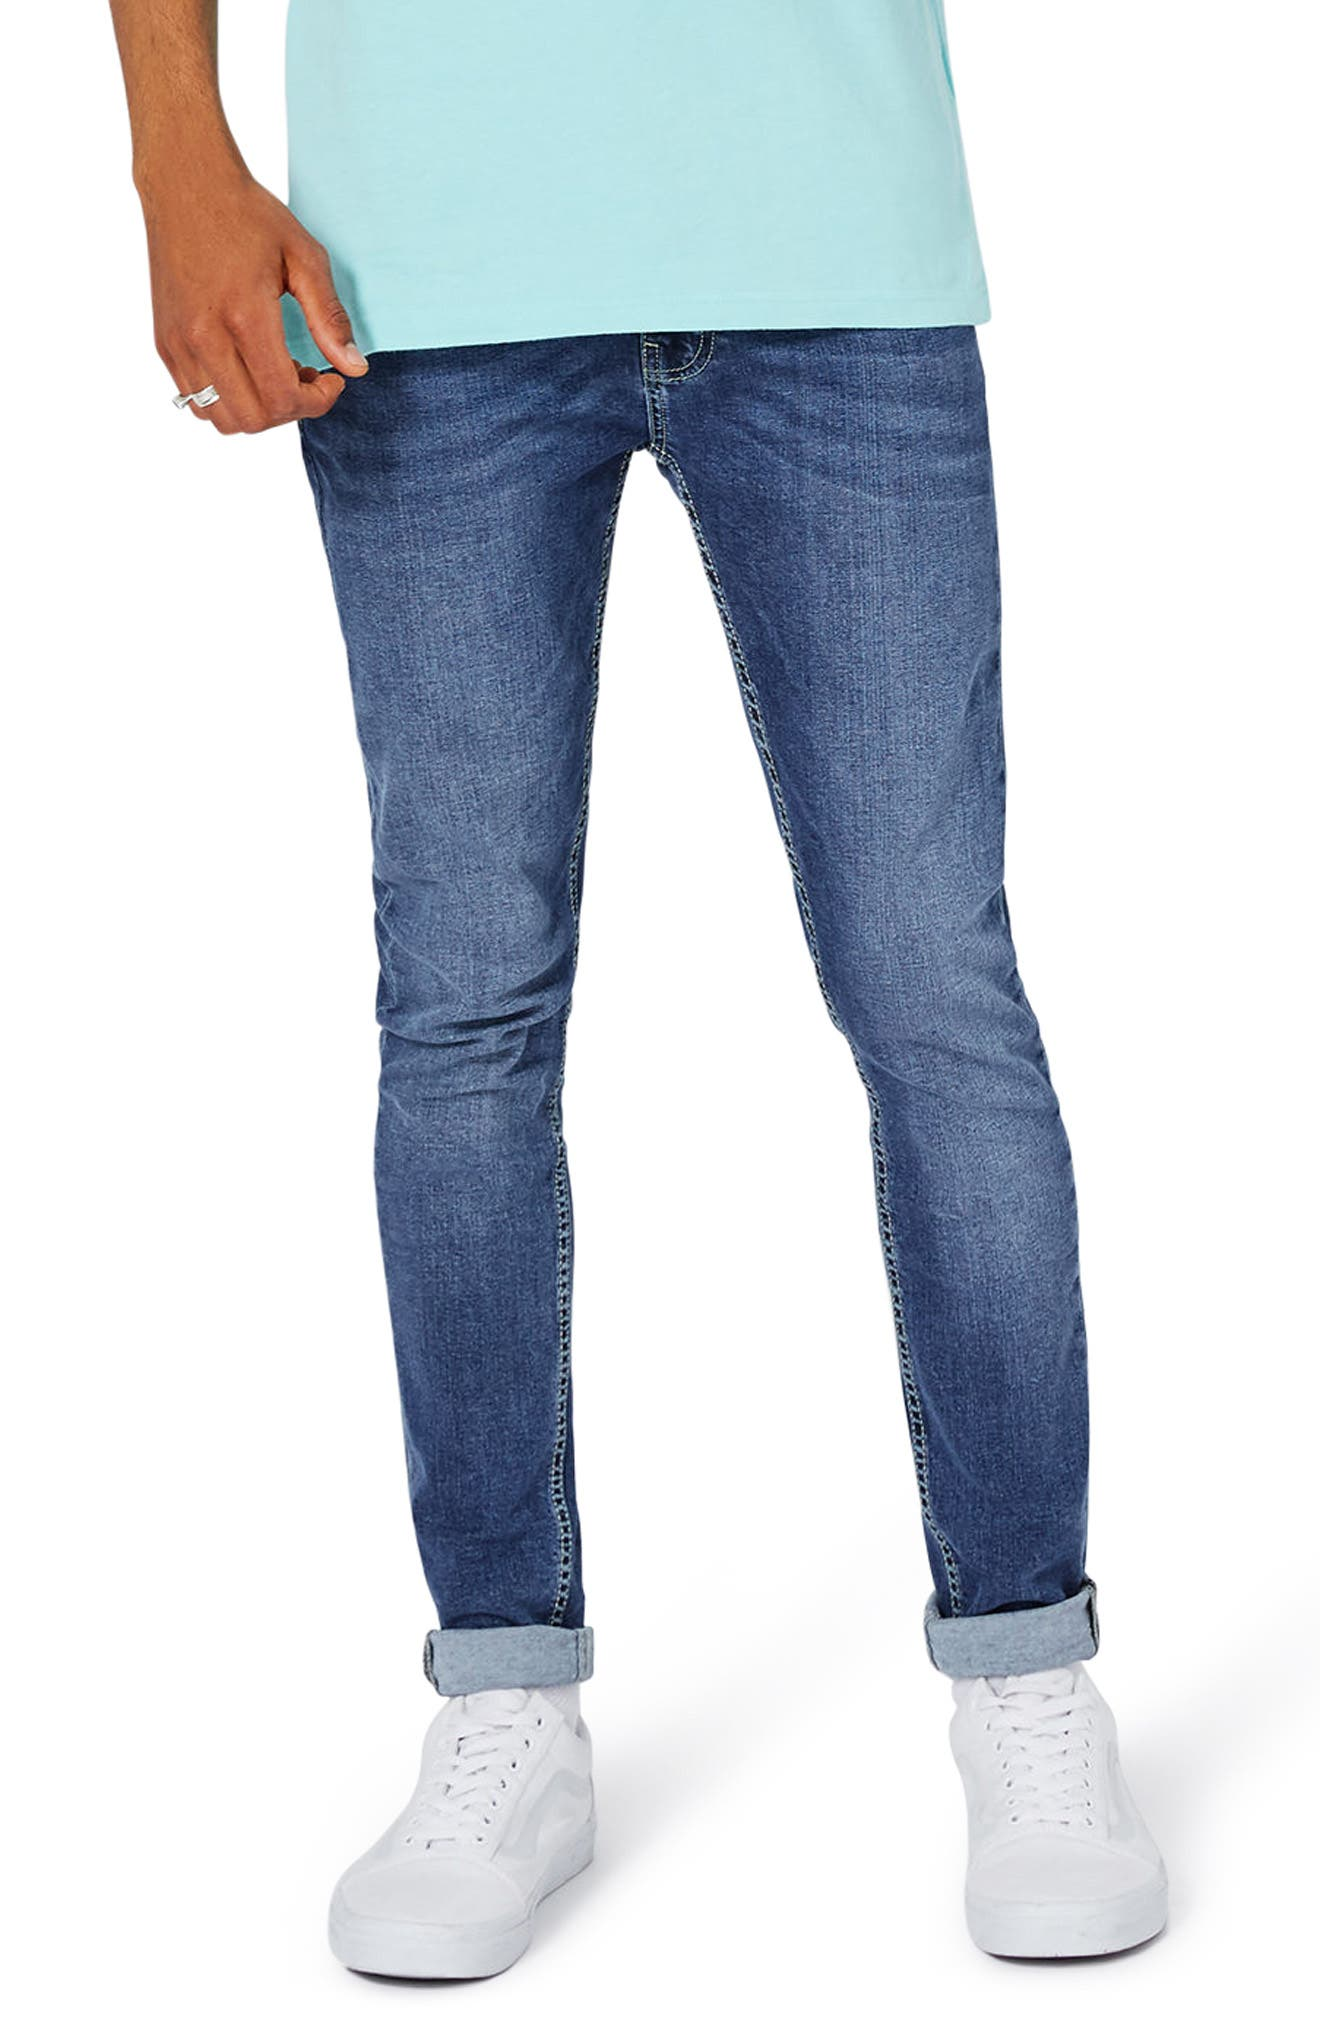 Spray-On Skinny Fit Jeans,                             Main thumbnail 1, color,                             Blue